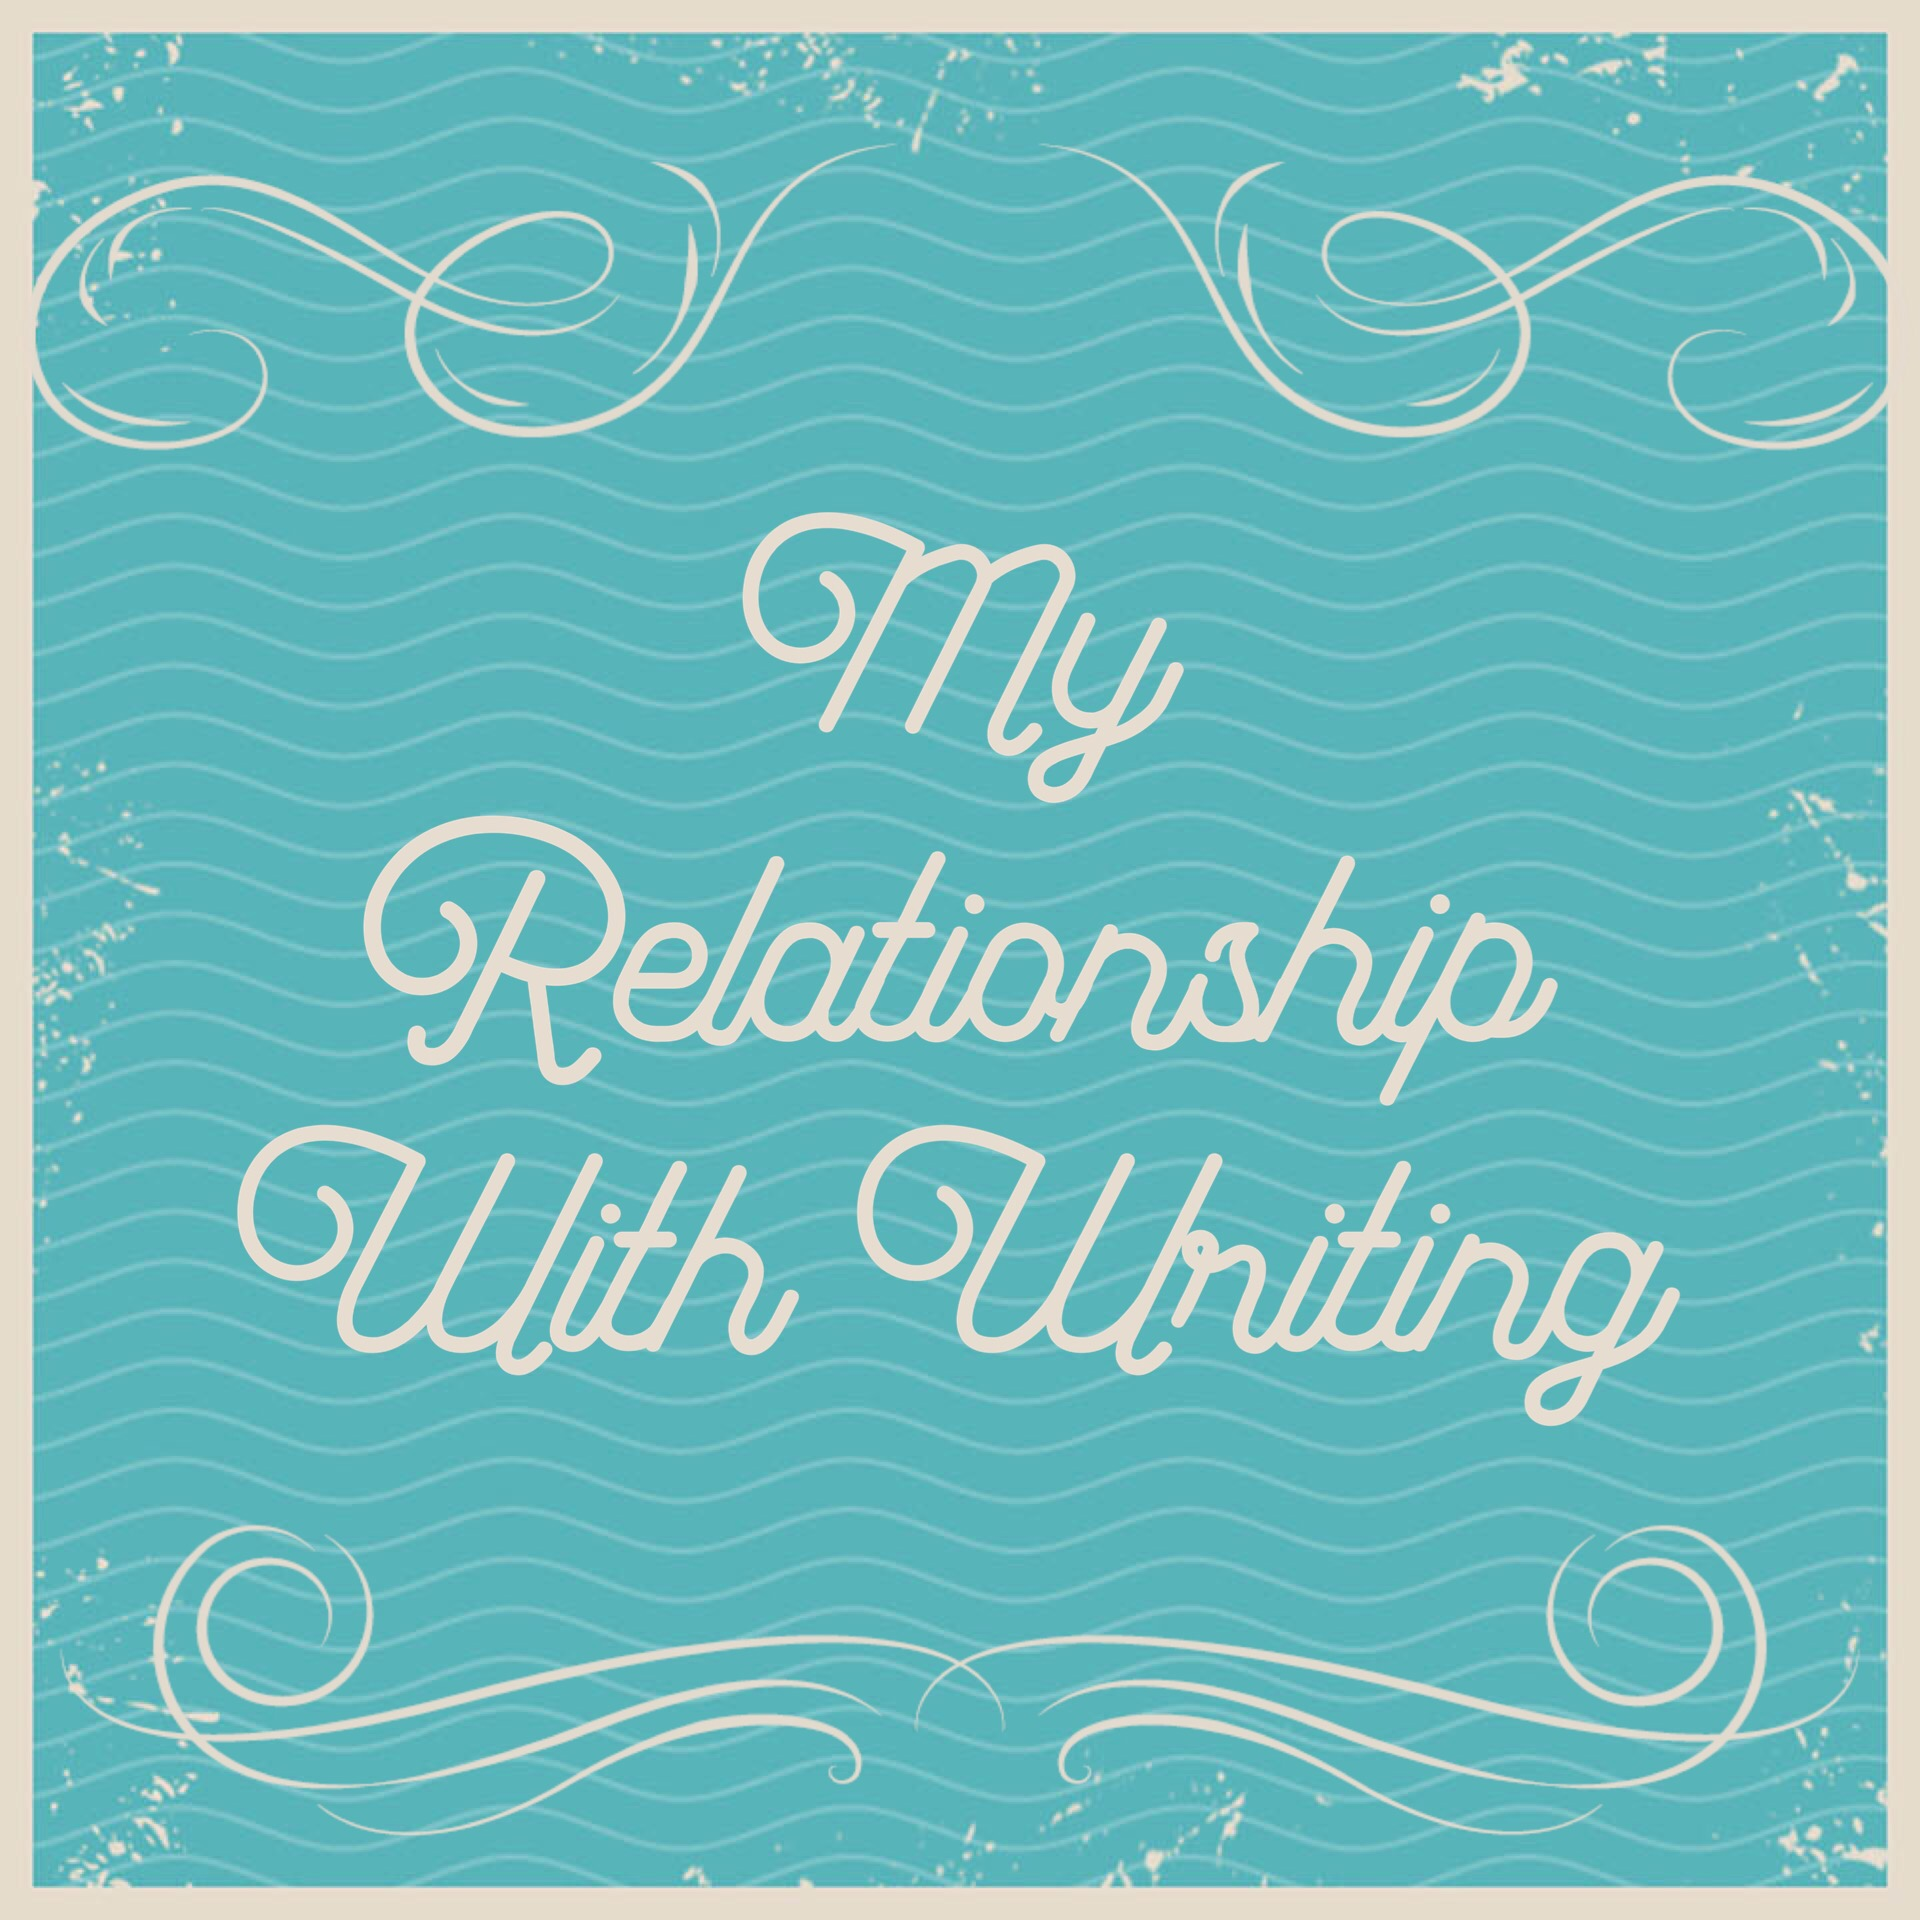 my relationship with writing The following outline is provided as an overview of and topical guide to interpersonal relationships interpersonal relationship - association between two or more people this association may be based on limerence, love, solidarity, regular business interactions, or some other type of social commitment.